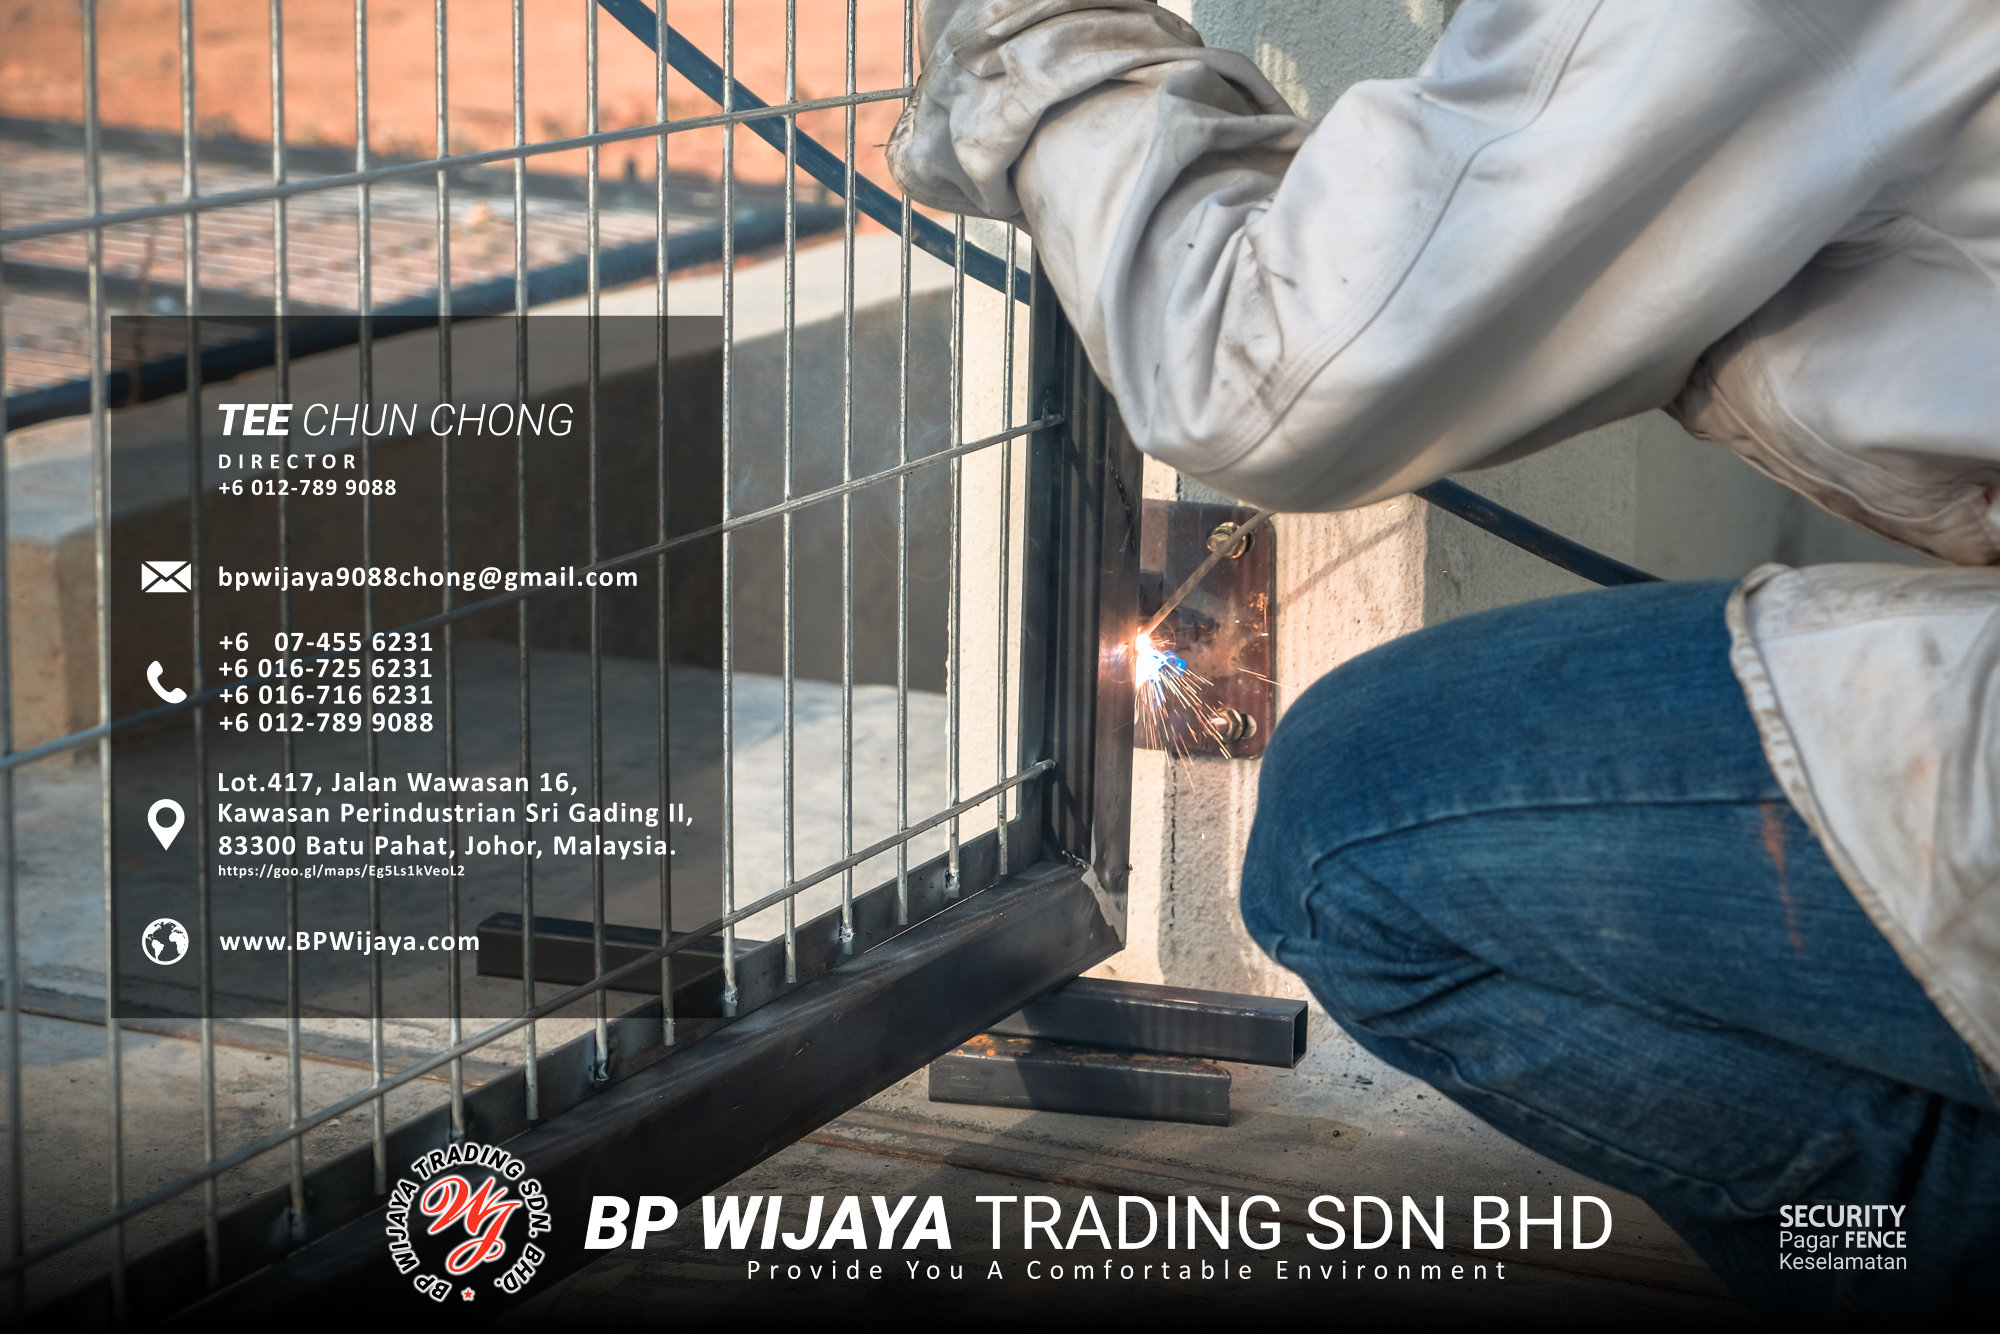 Kuala Lumpur Security Fence Supply we are manufacturer of security fence BP Wijaya Trading Sdn Bhd Safety Fence Building Materials for Housing Construction factory fence house beauty fence A03-019